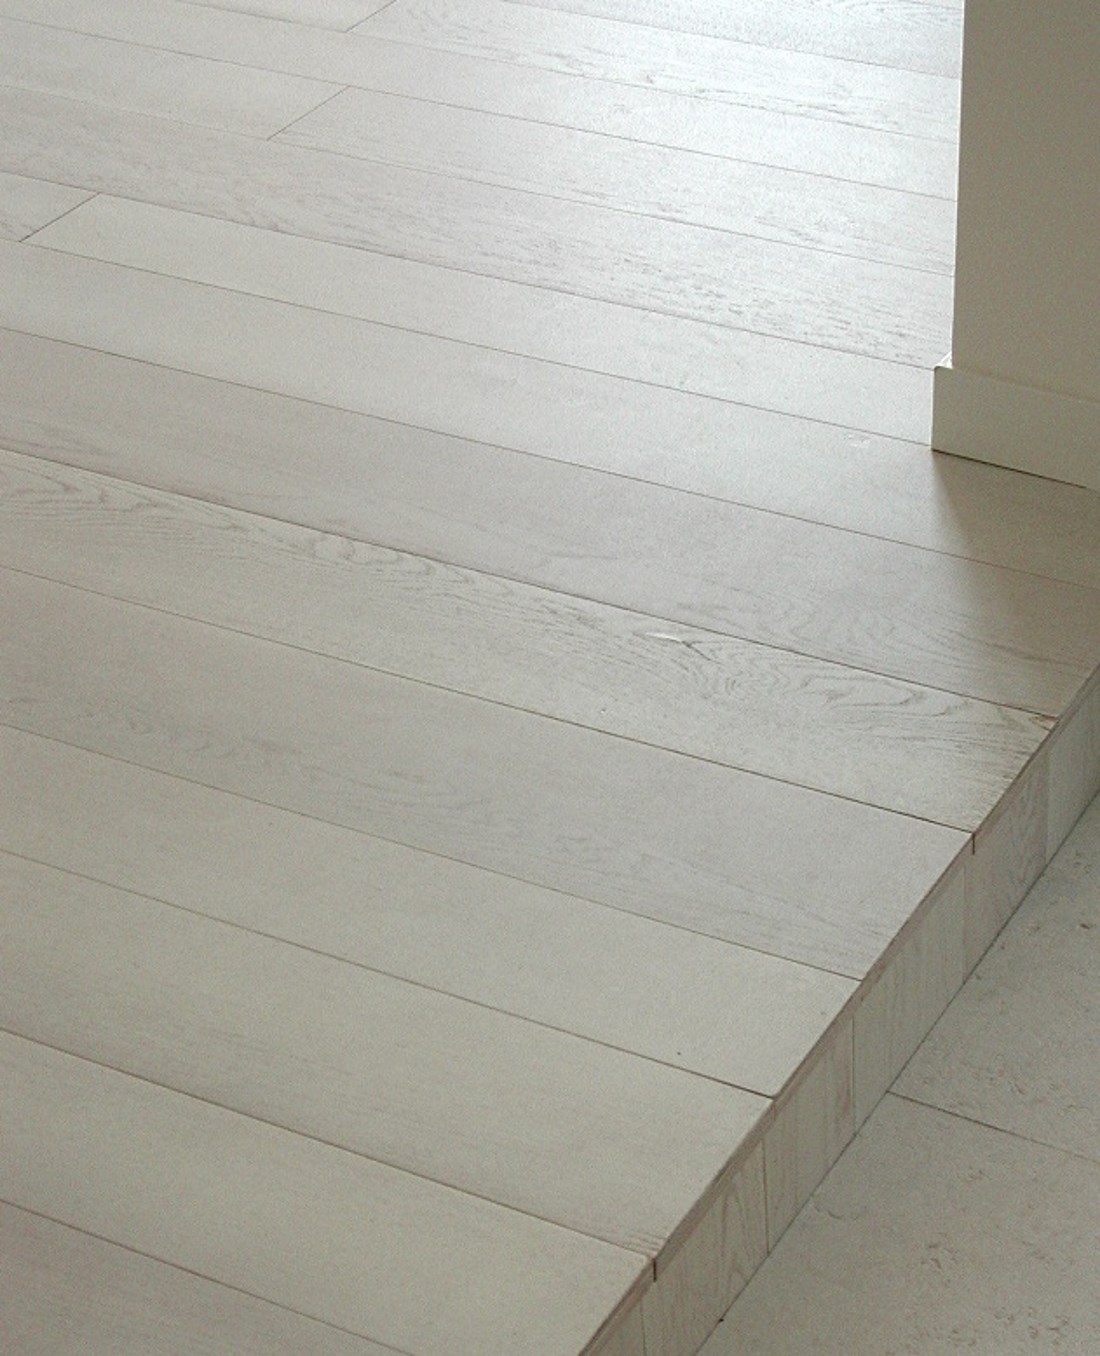 White oak flooring - Alessandro Villa architect